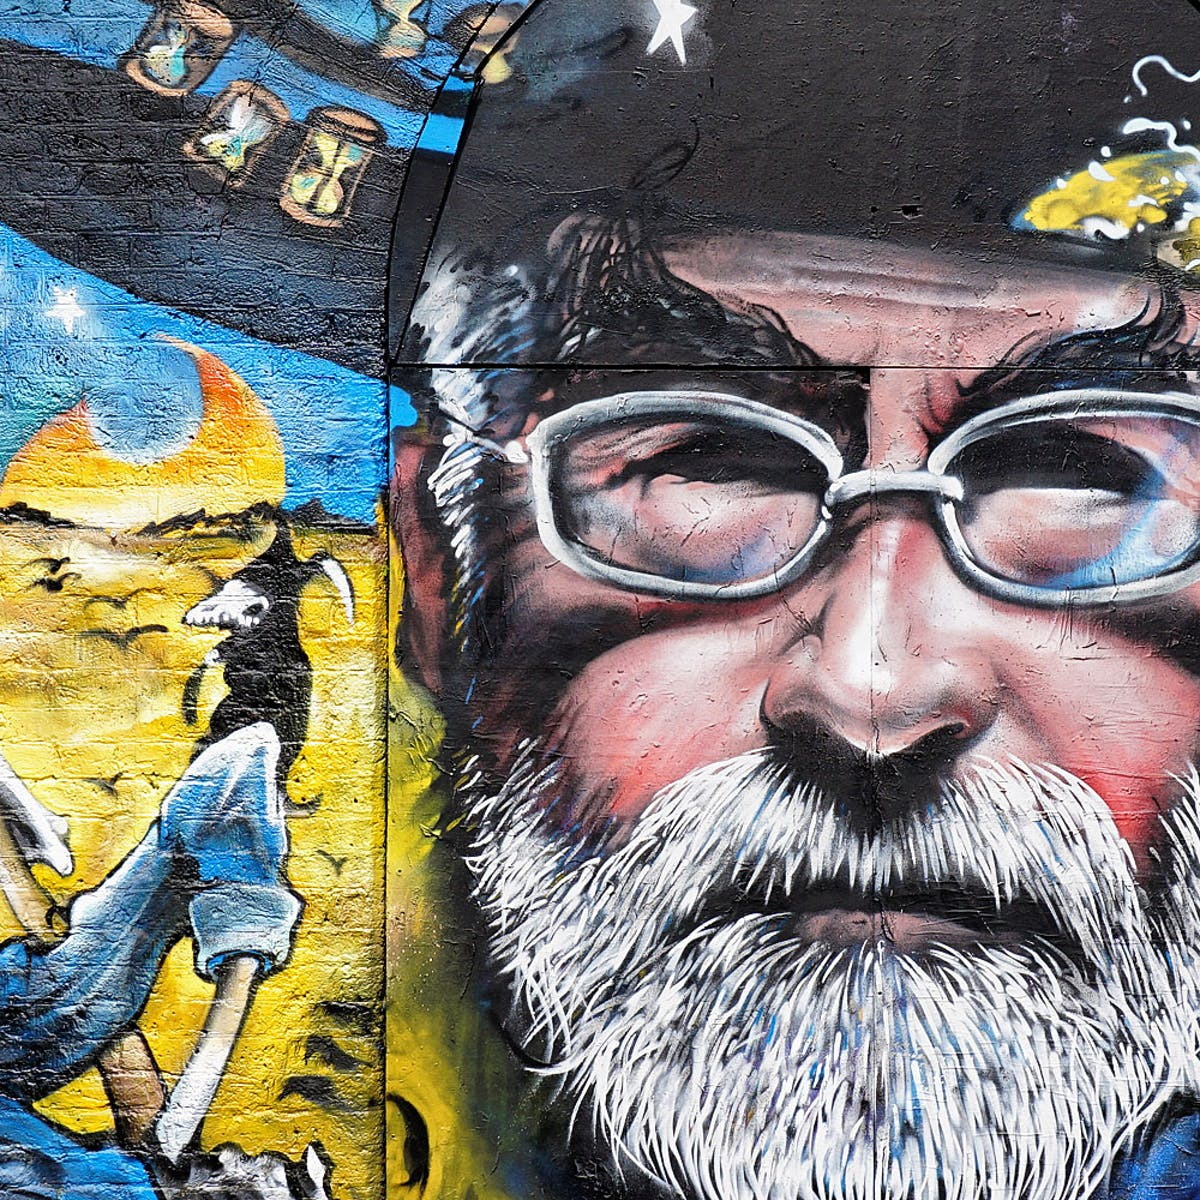 A beginner's guide to Terry Pratchett's Discworld